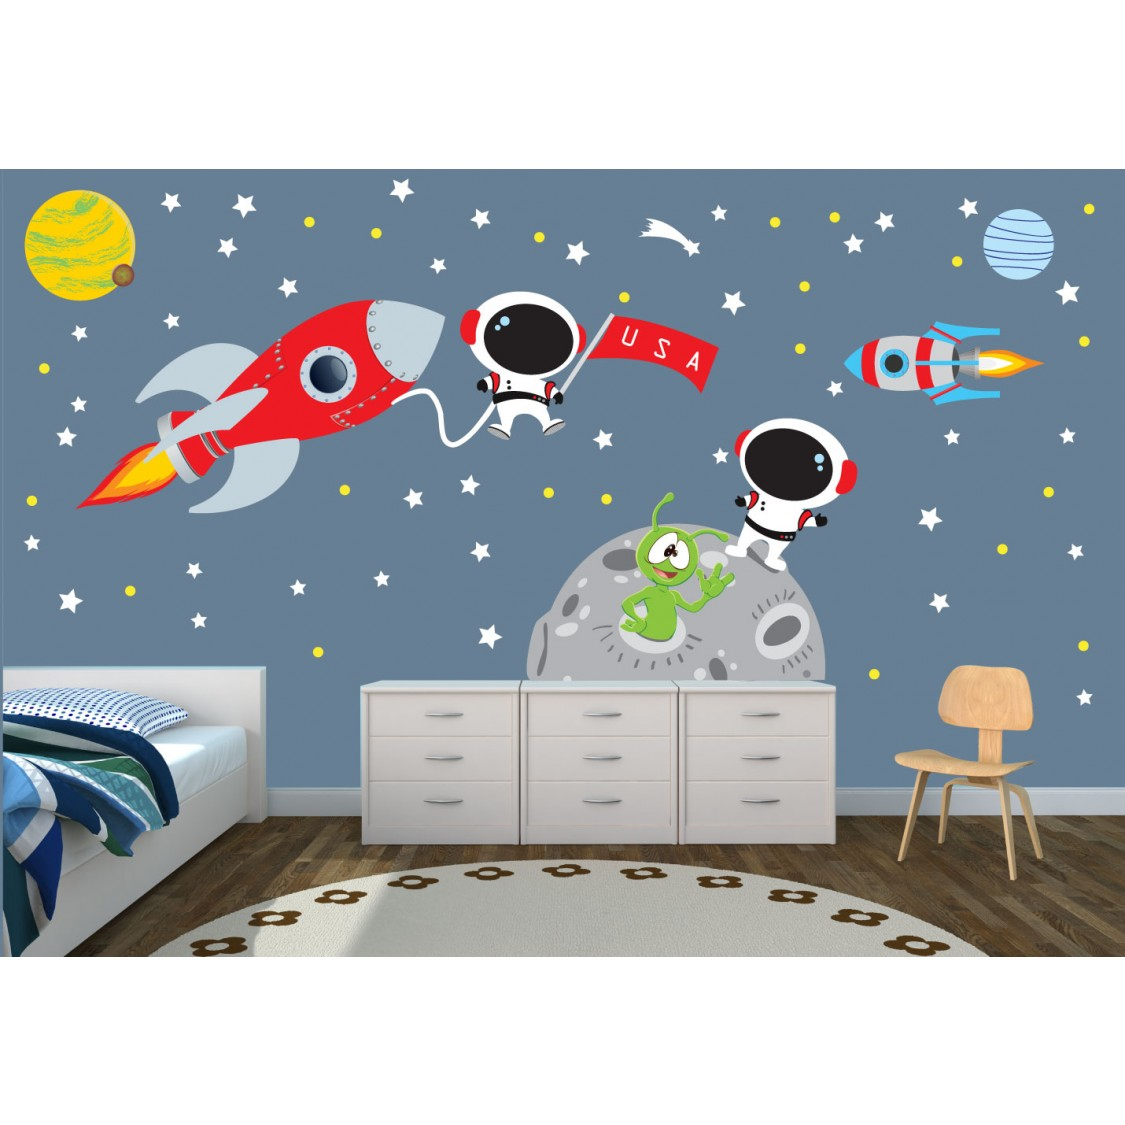 Star Wall Decals For Nursery For Kids